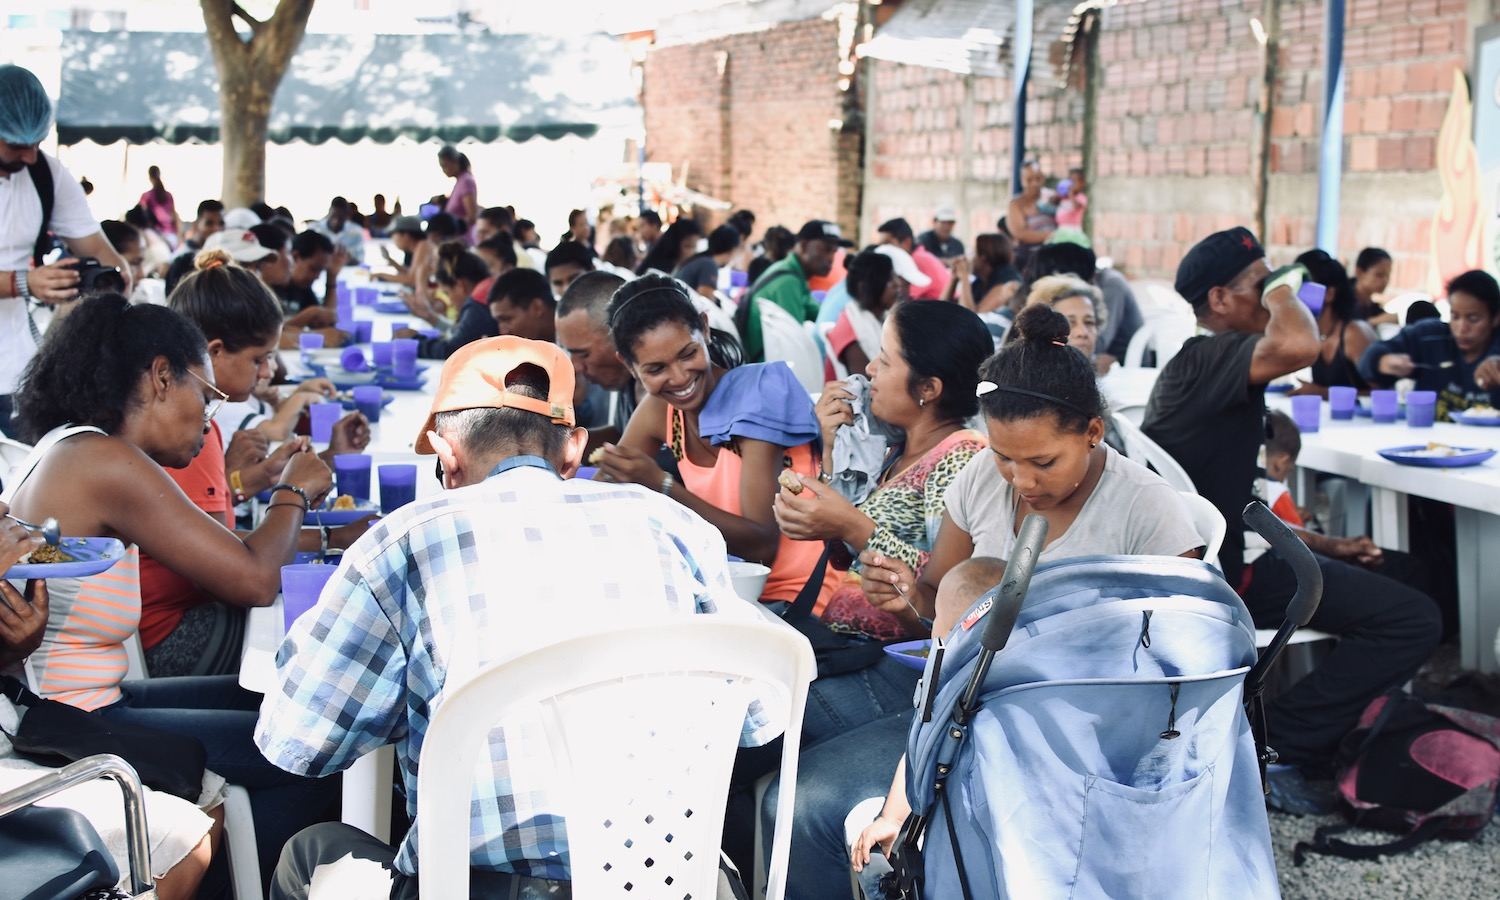 Feeding refugees and migrants is building a meaningful support system between Colombians and Venezuelans amidst the worst refugee crisis in the Americas.